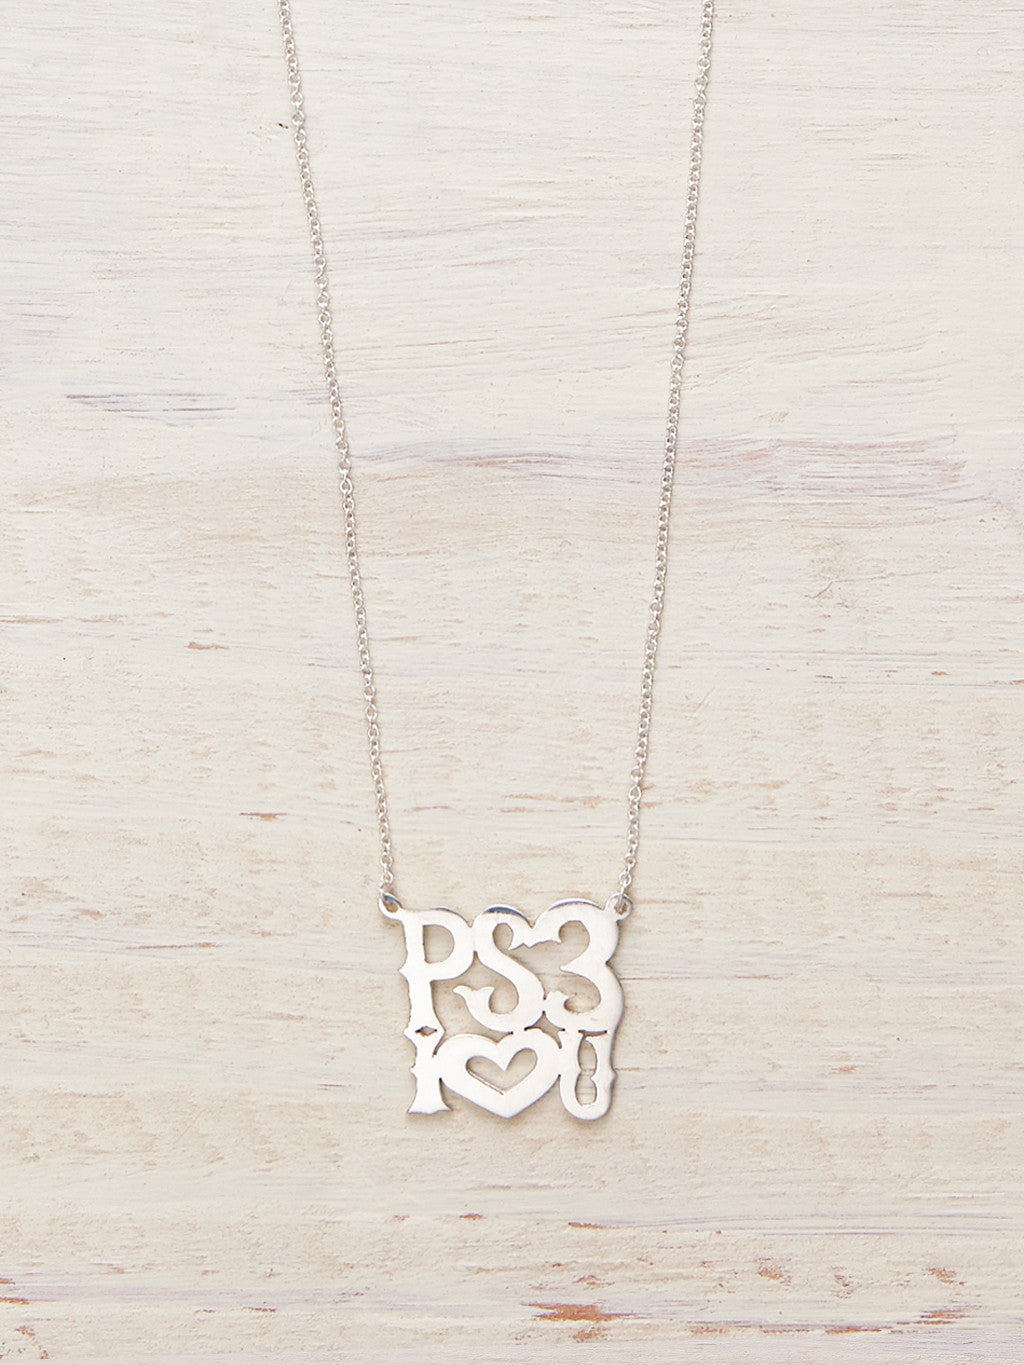 PS3 I Love You Necklace